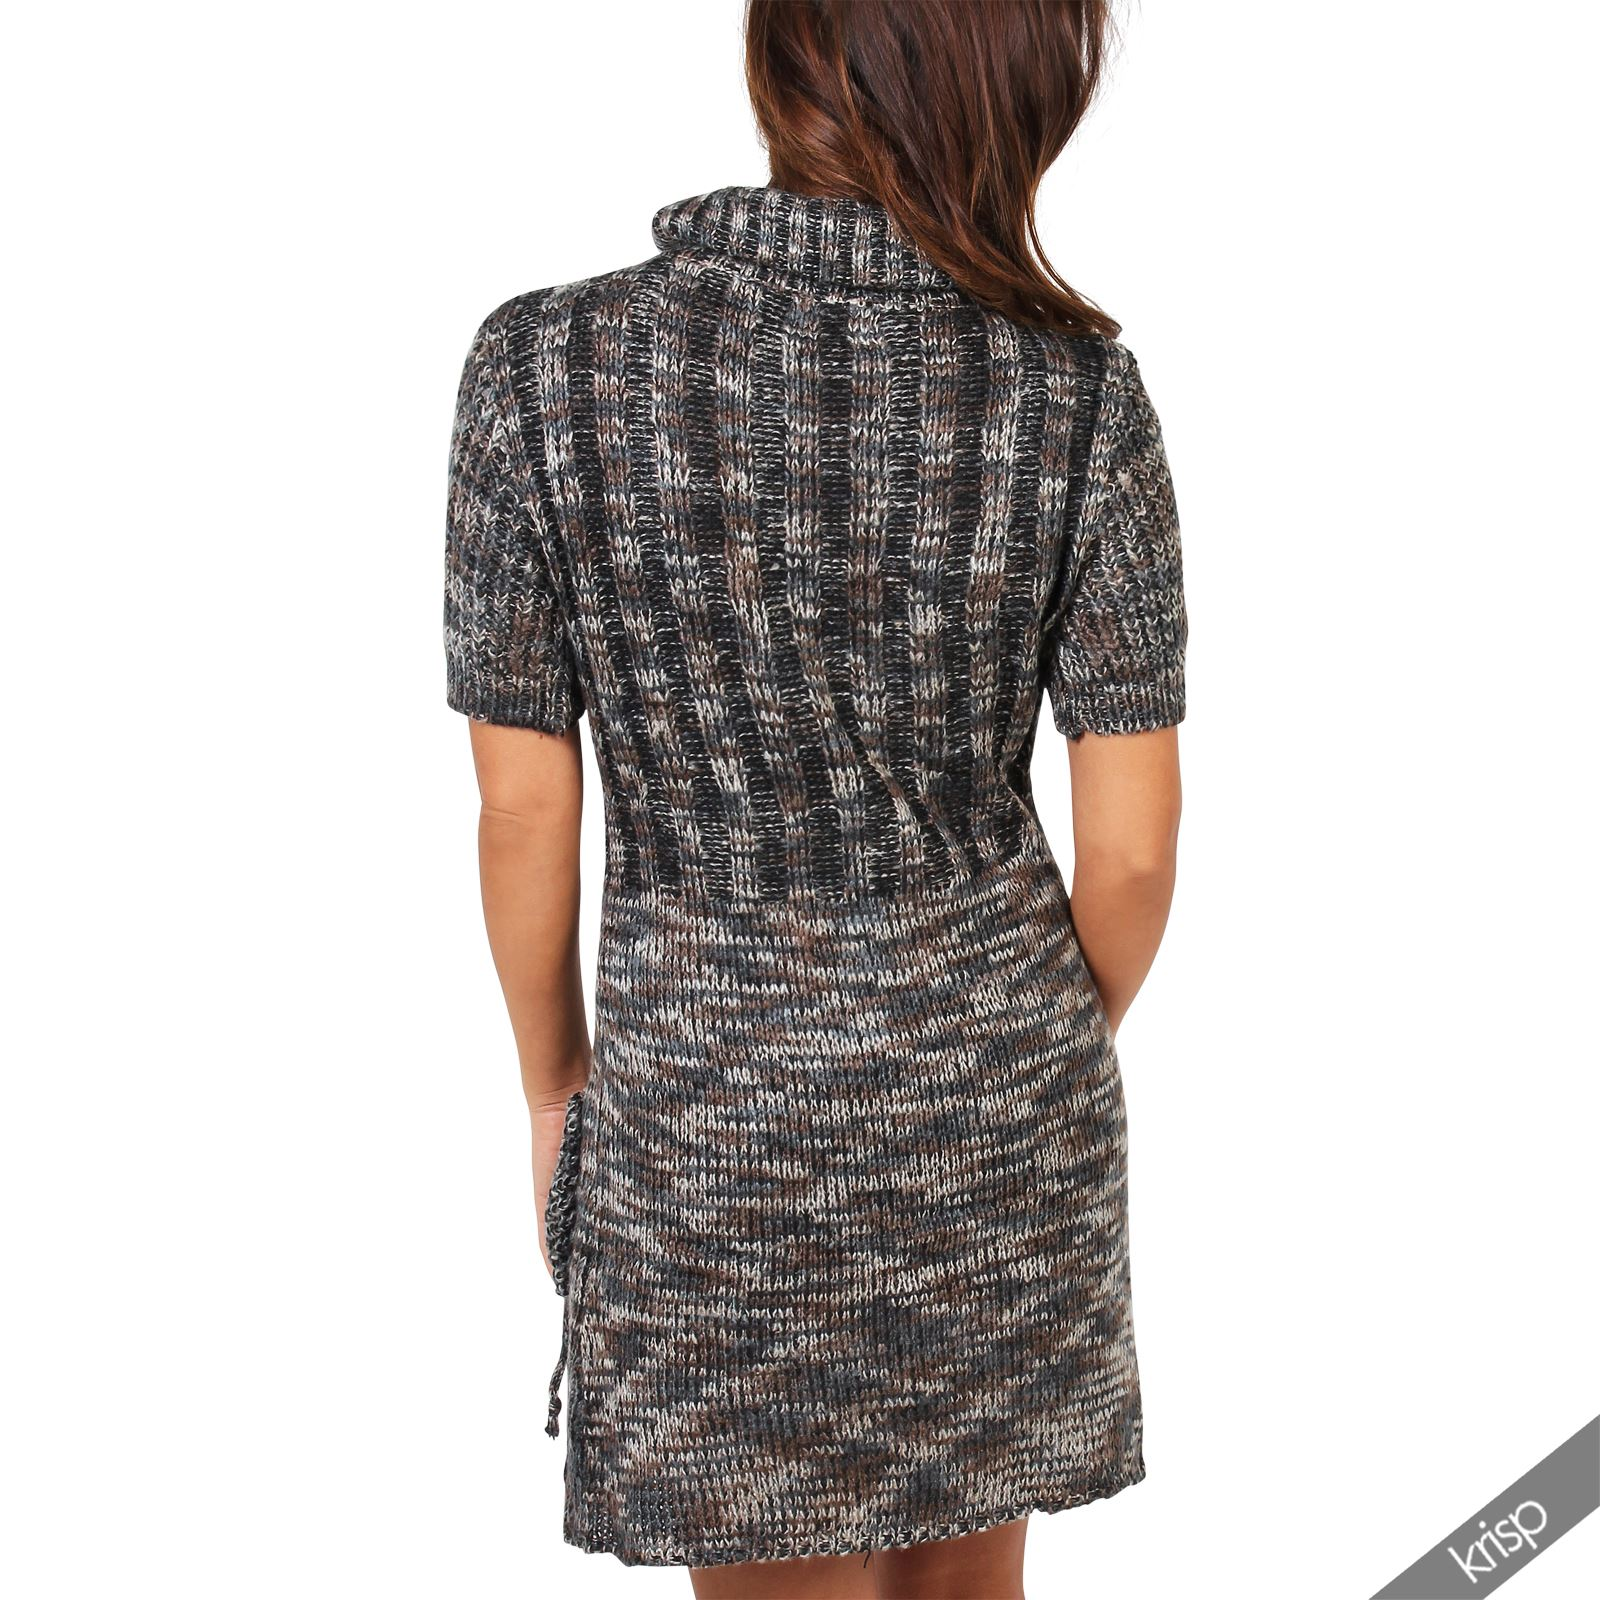 Femme robe pull tunique tricot grosse maille col roul poches ebay - Tricot grosse maille ...